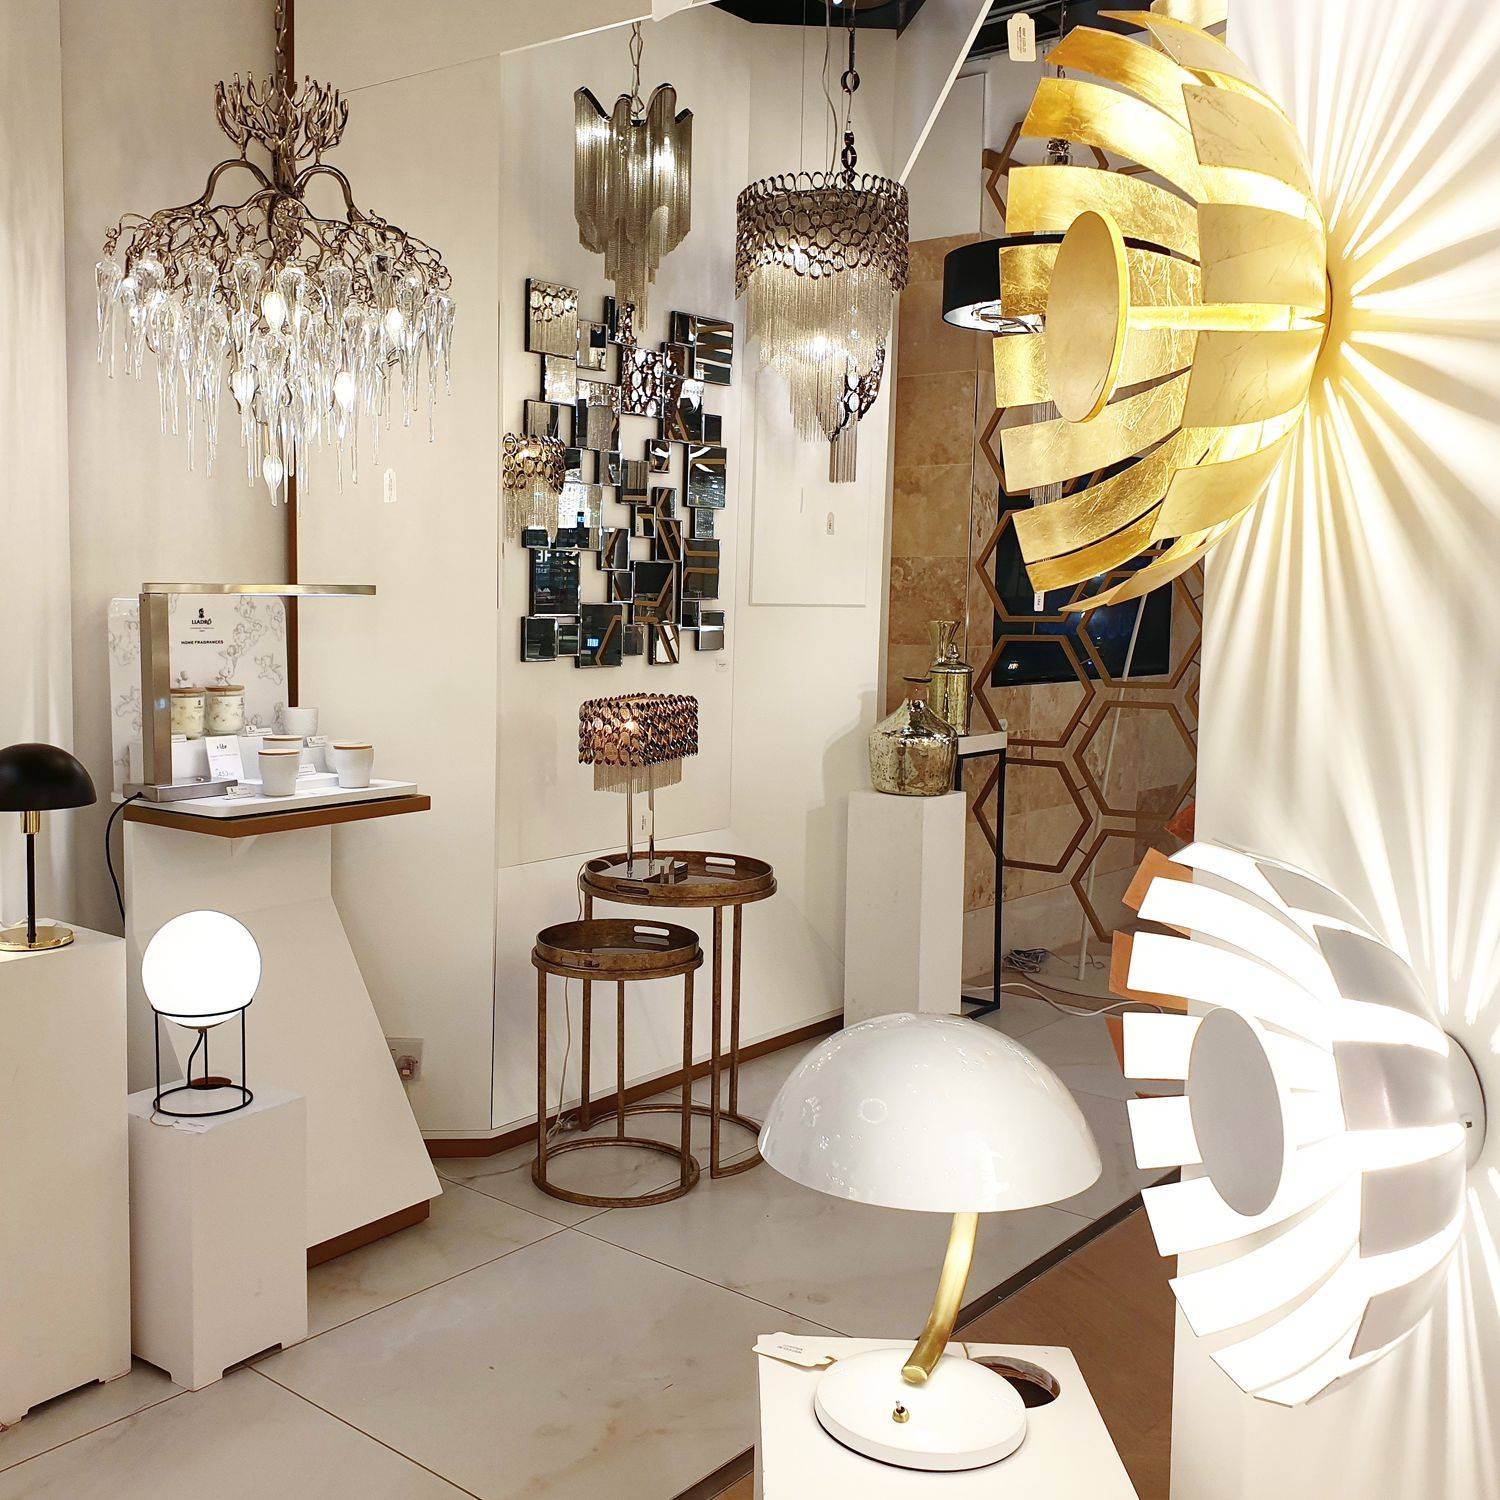 iLite Mailbox Lighting Showroom 4